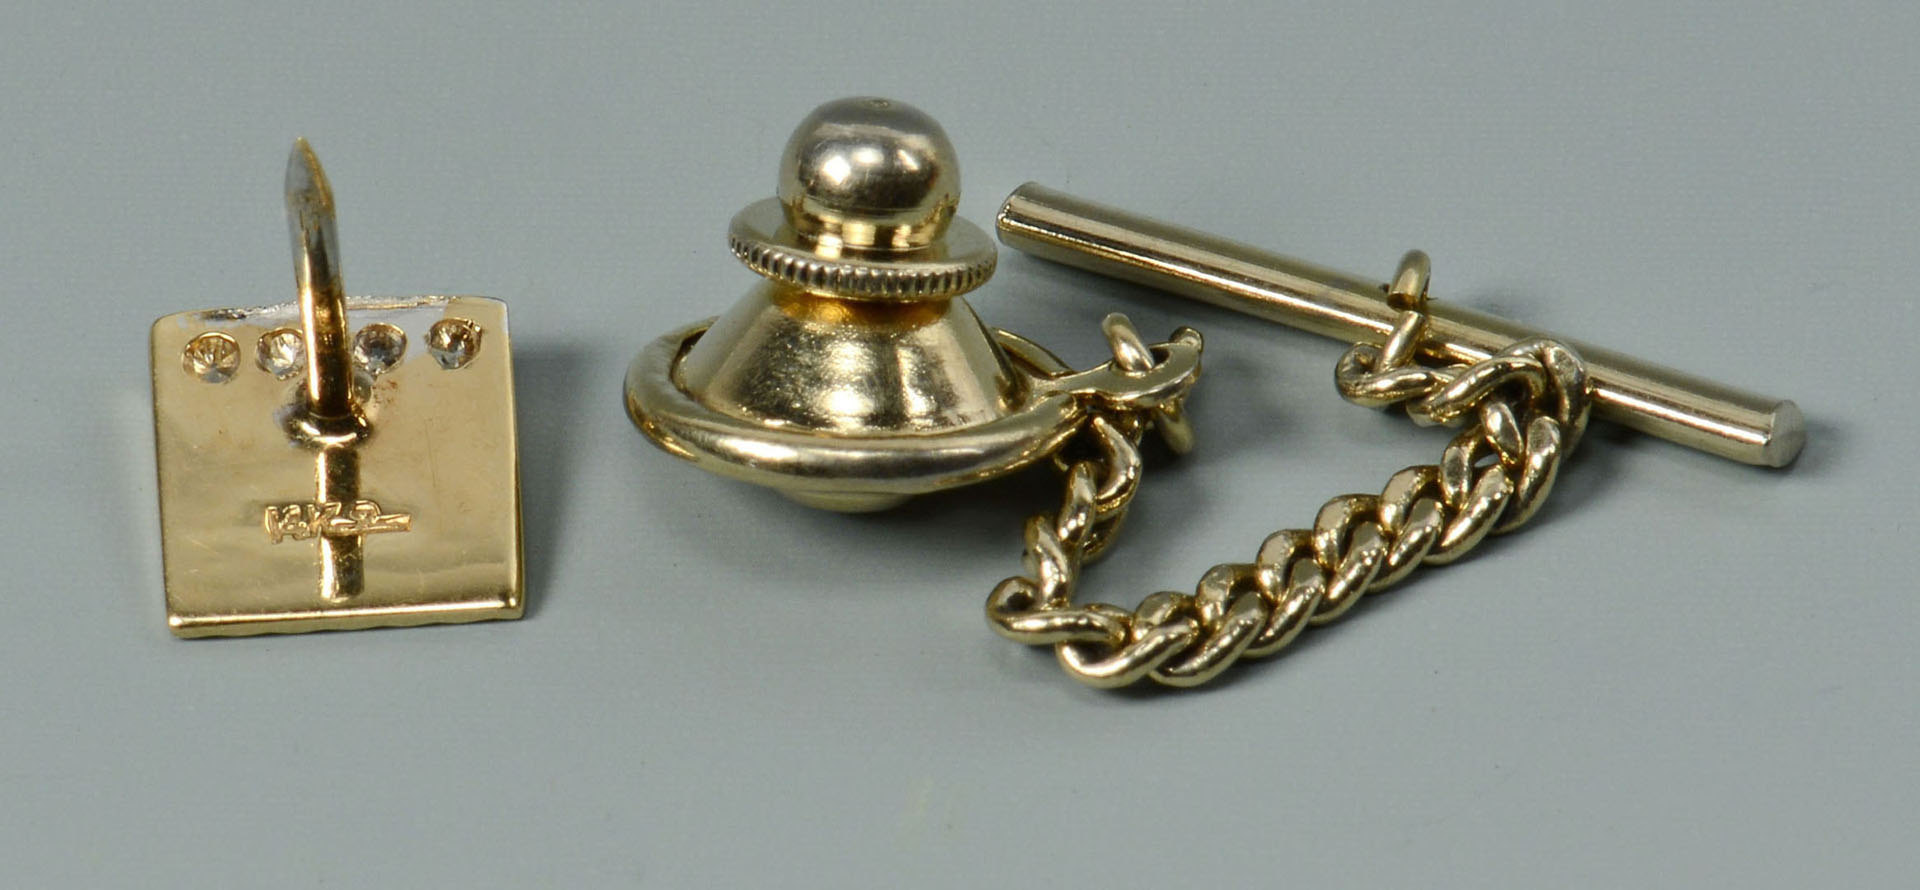 Lot 290: Grouping of 14K Gold Men's Jewelry, 3 items